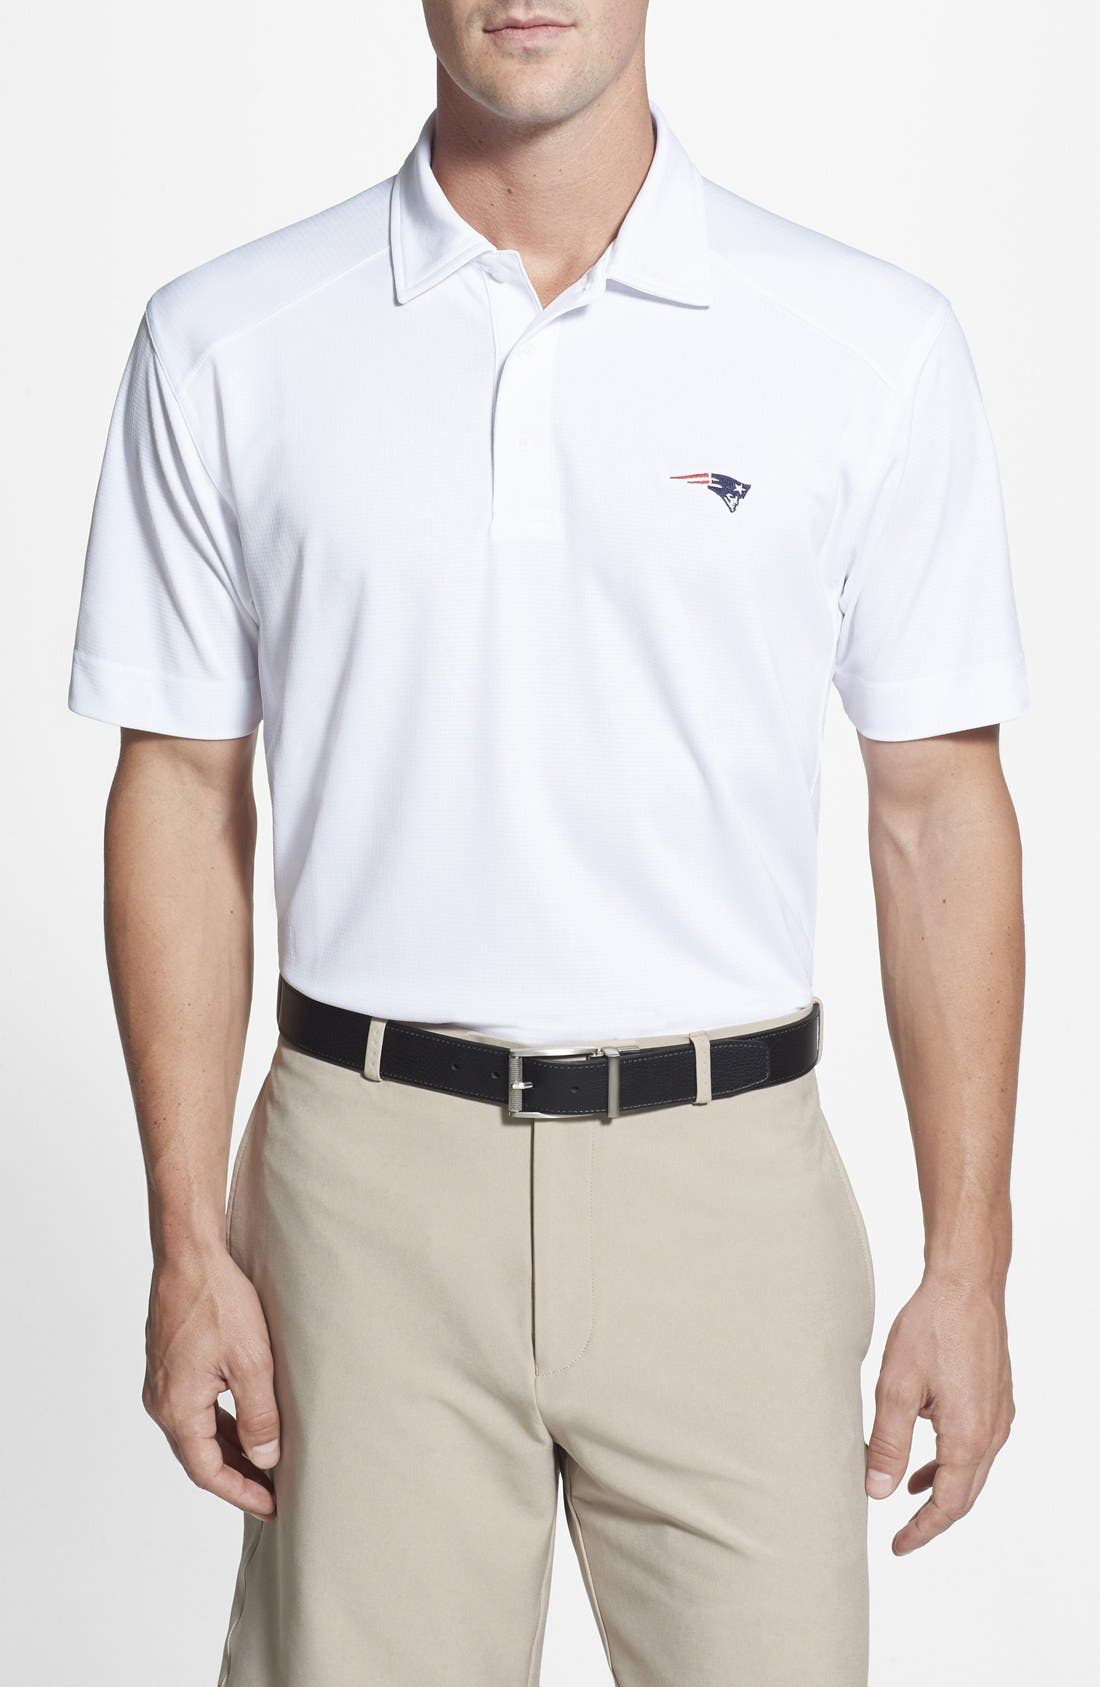 'New England Patriots - Genre' DryTec Moisture Wicking Polo,                             Main thumbnail 1, color,                             100